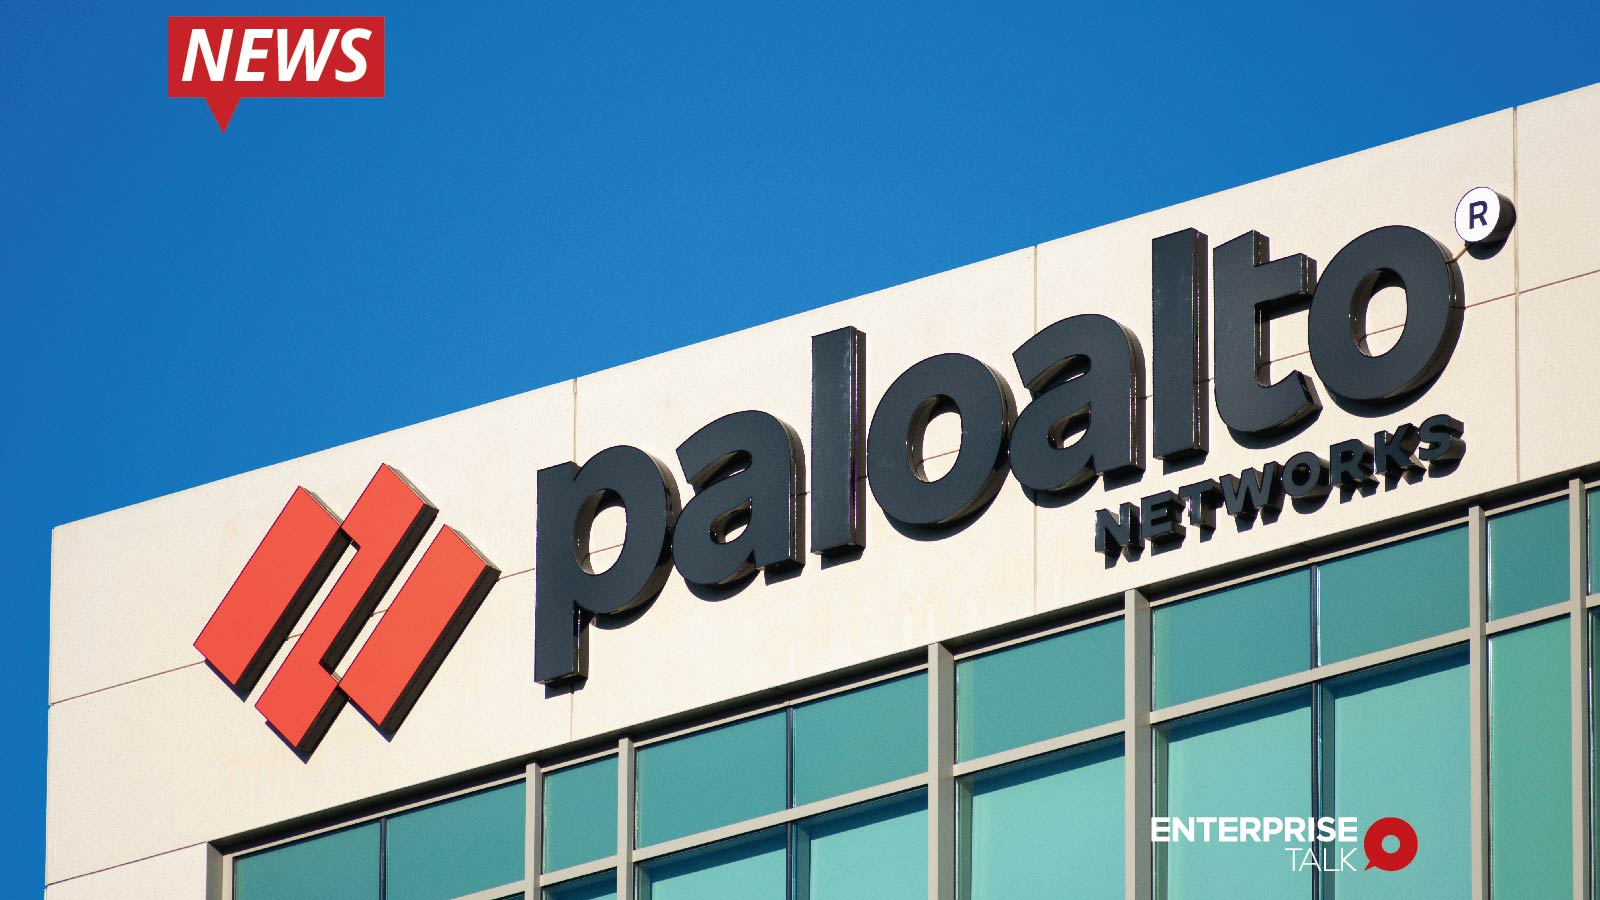 Palo Alto Networks Appoints Dr. Helene D. Gayle to Its Board of Directors